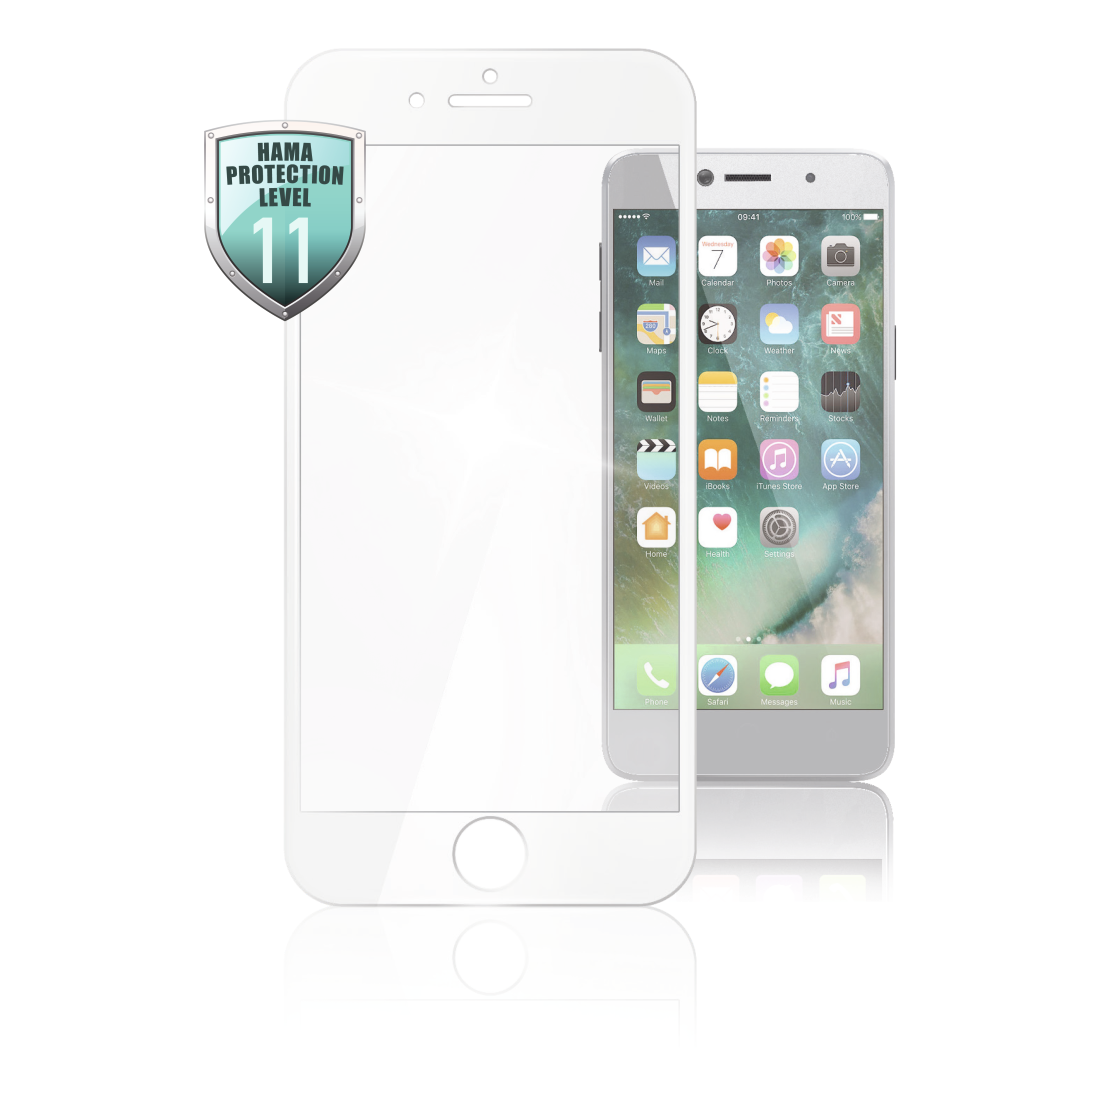 abx High-Res Image - Hama, Verre de protection Full-Screen 3D p. Apple iPhone 6/6s/7/8, blanc